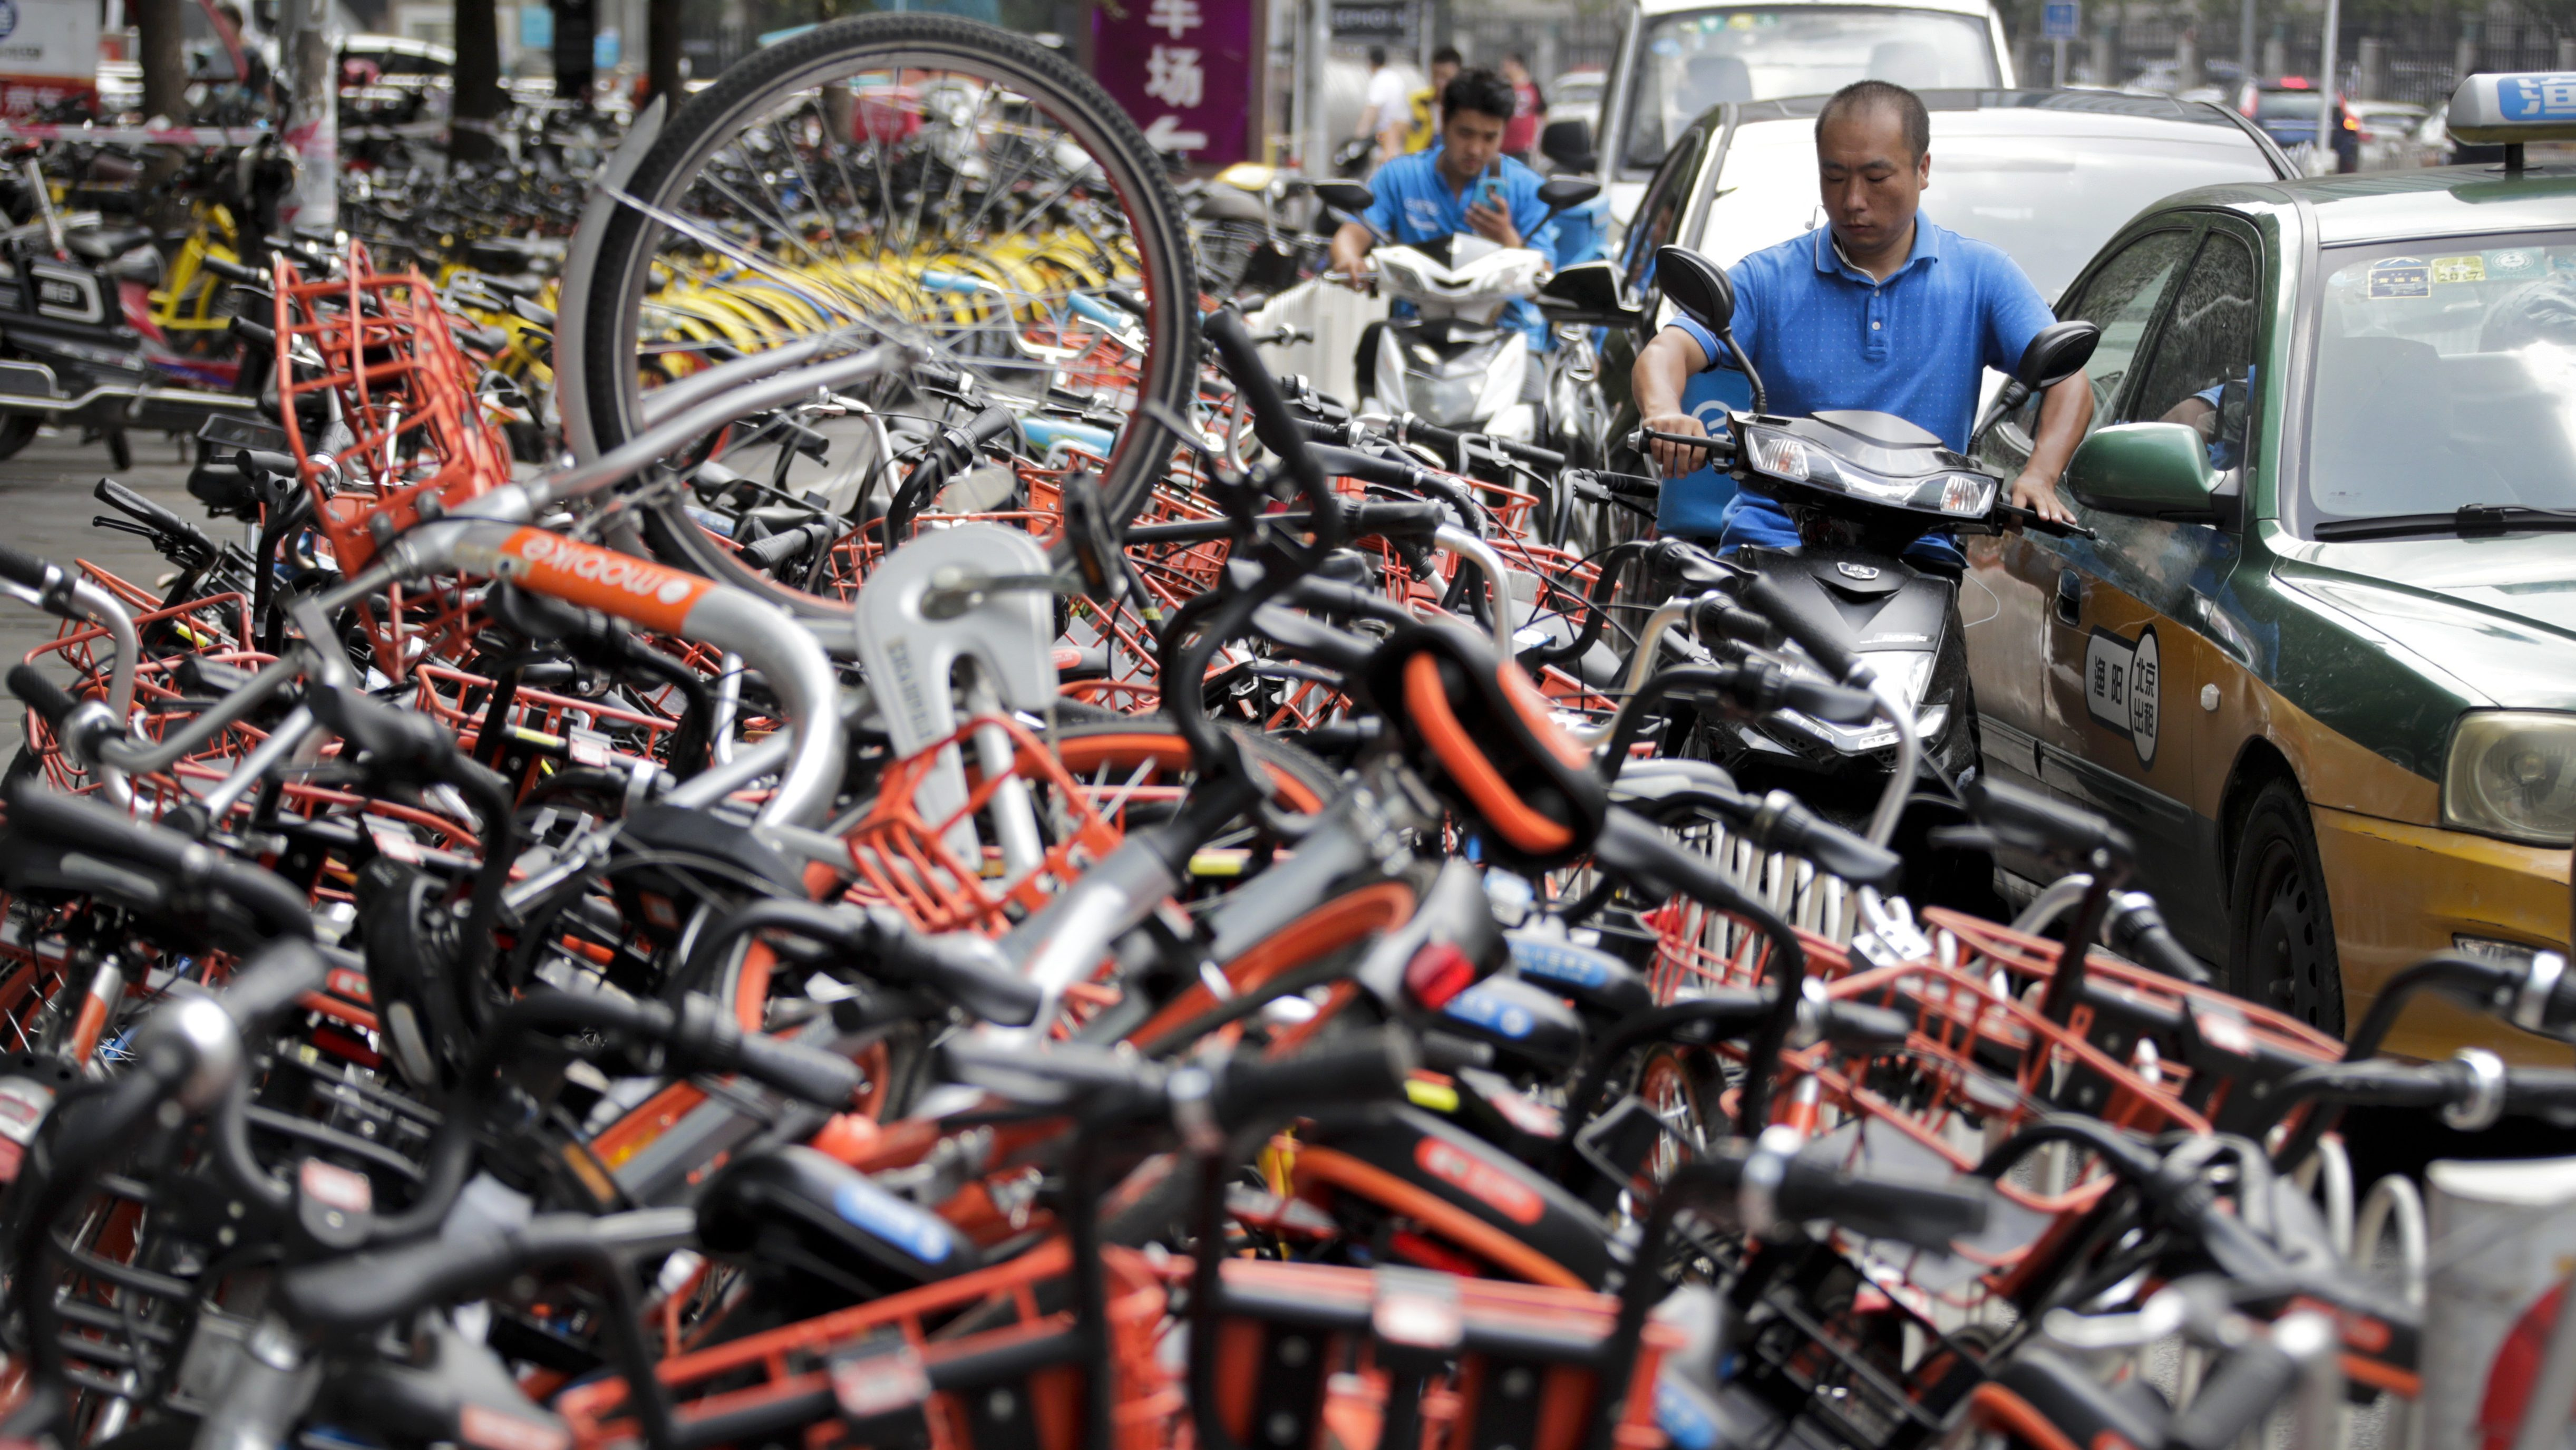 A man on his electric motorbike scooter tries to pass a busy traffic car lane as a stack of shared bicycles block the cycle lane on a street in Beijing, Monday, Aug. 14, 2017. Chinese authorities has issued nationwide guidelines to regulate the bike-sharing services which have boomed but created management issues as millions of bikes clogged the sidewalks in major cities across China. (AP Photo/Andy Wong)